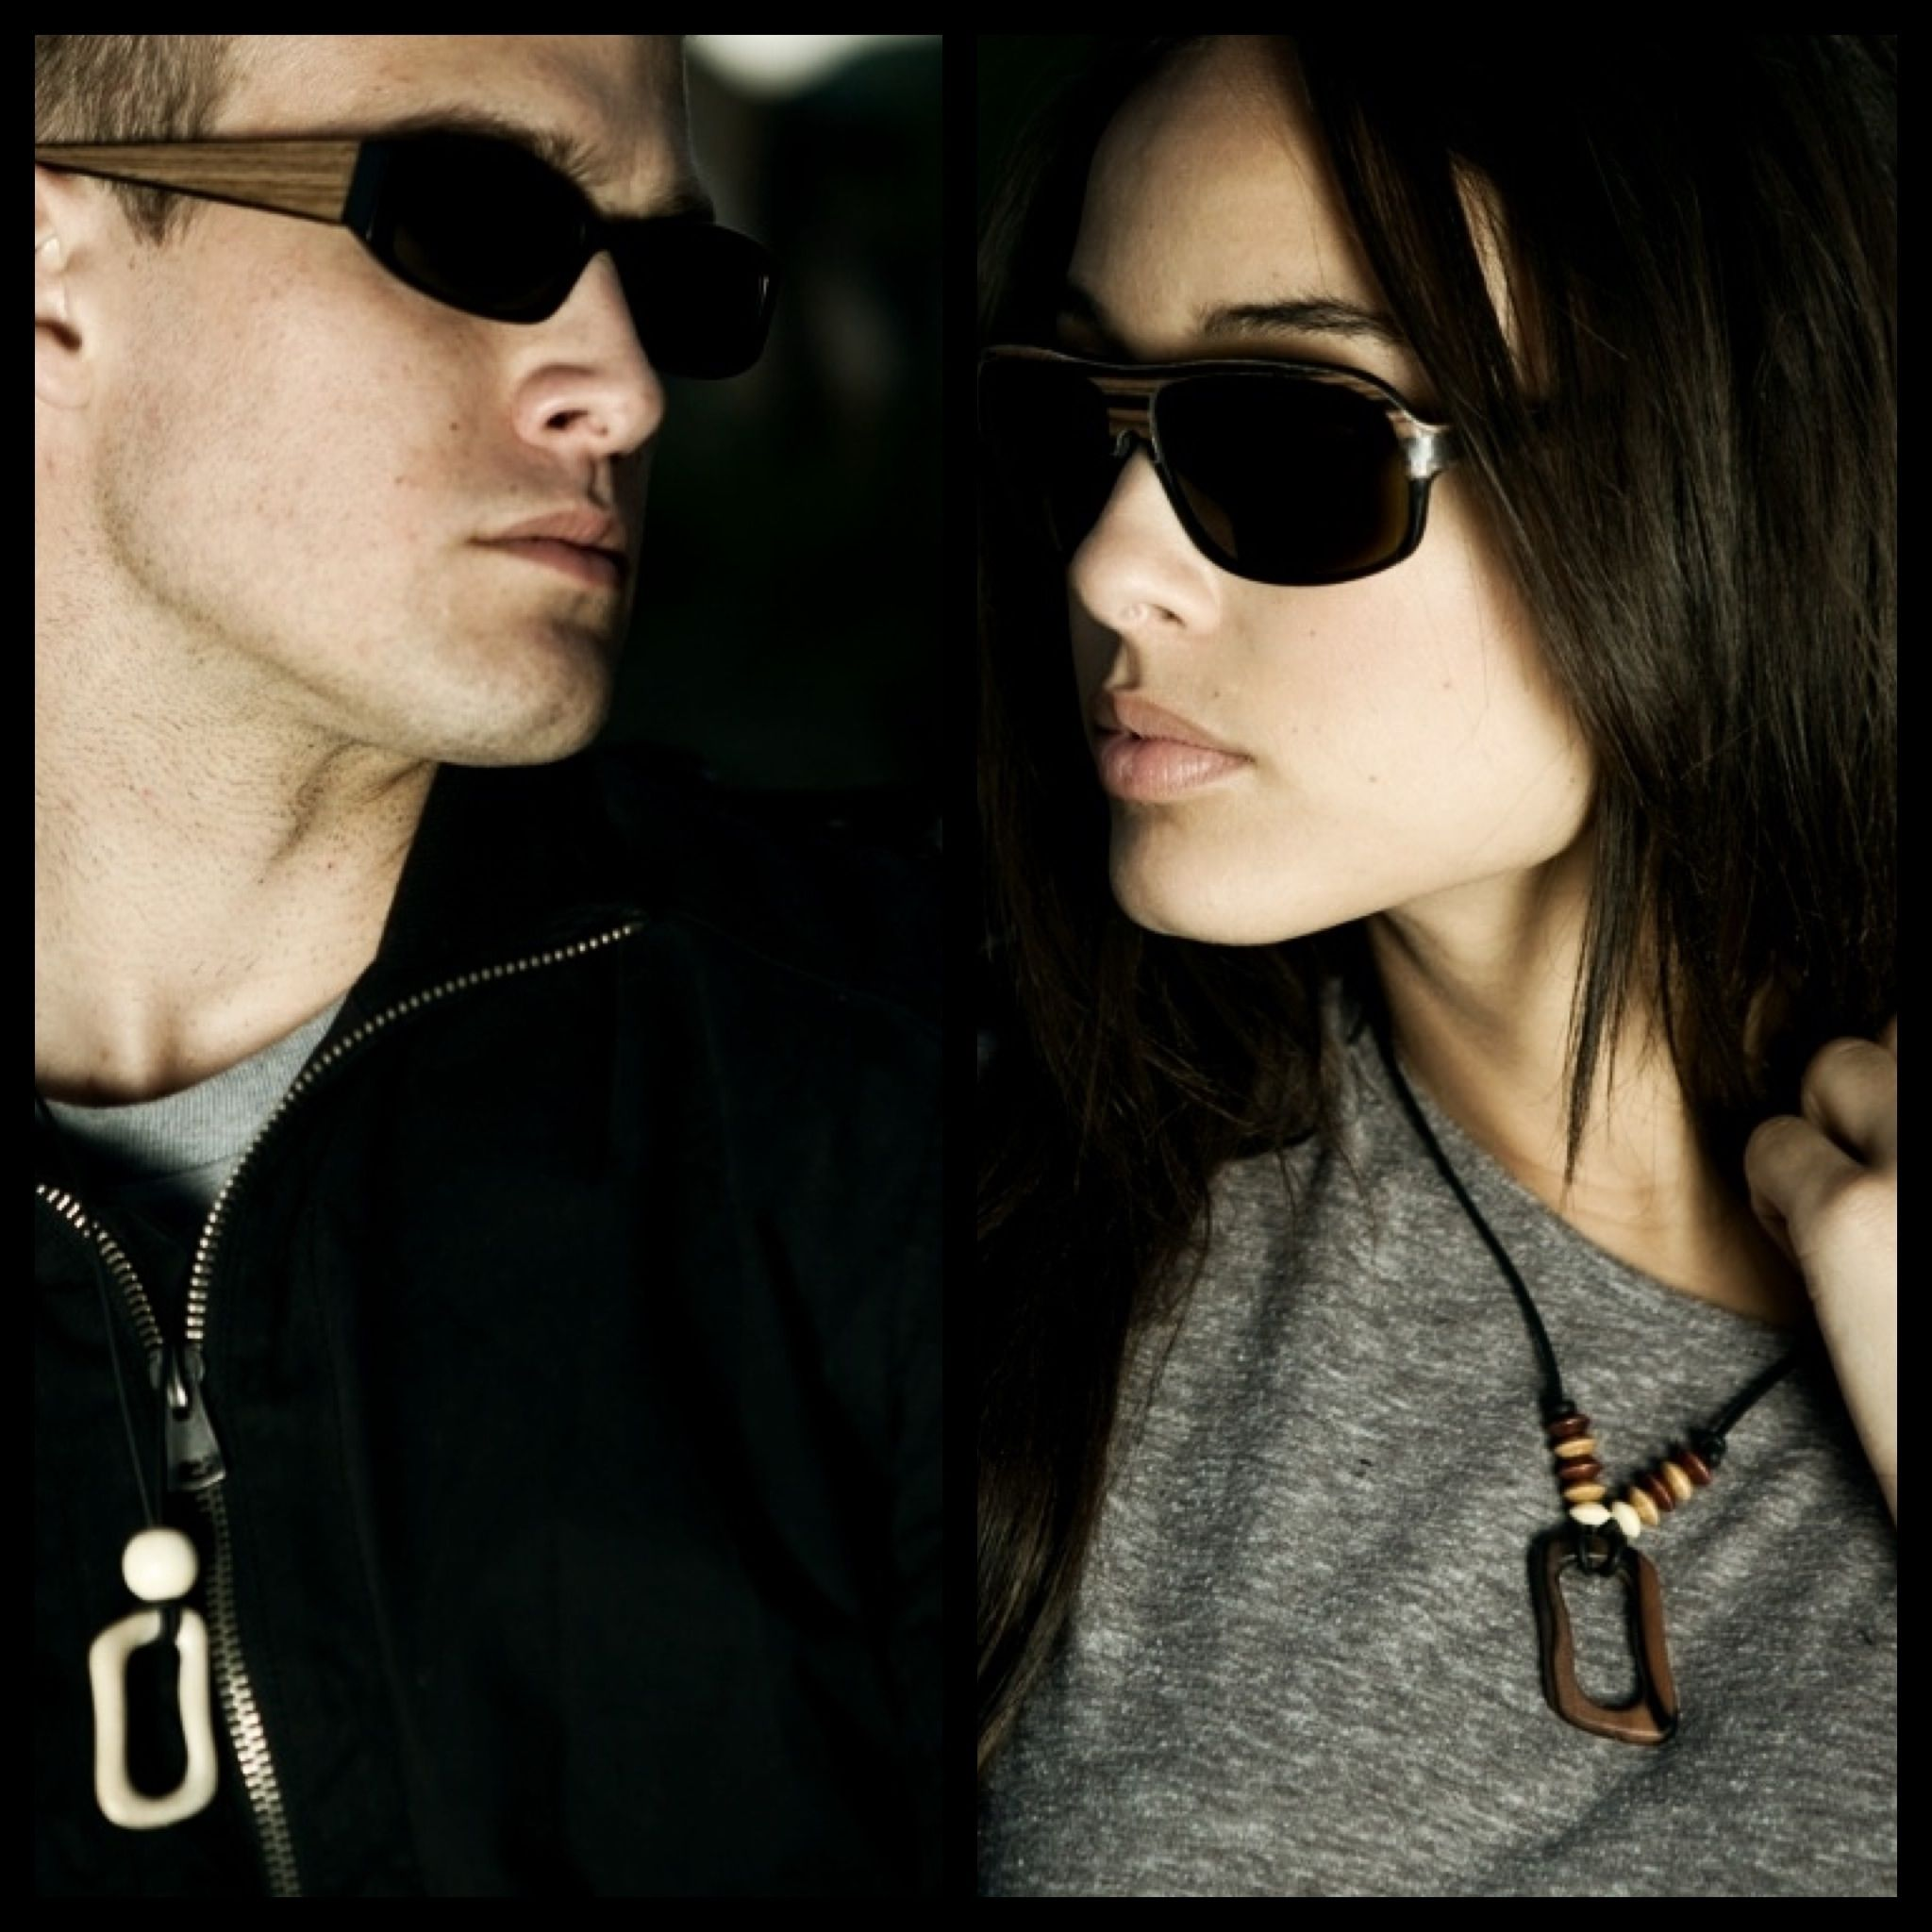 todd julian and chelsea gilligan wearing Sire's Crown wood ...Todd Julian